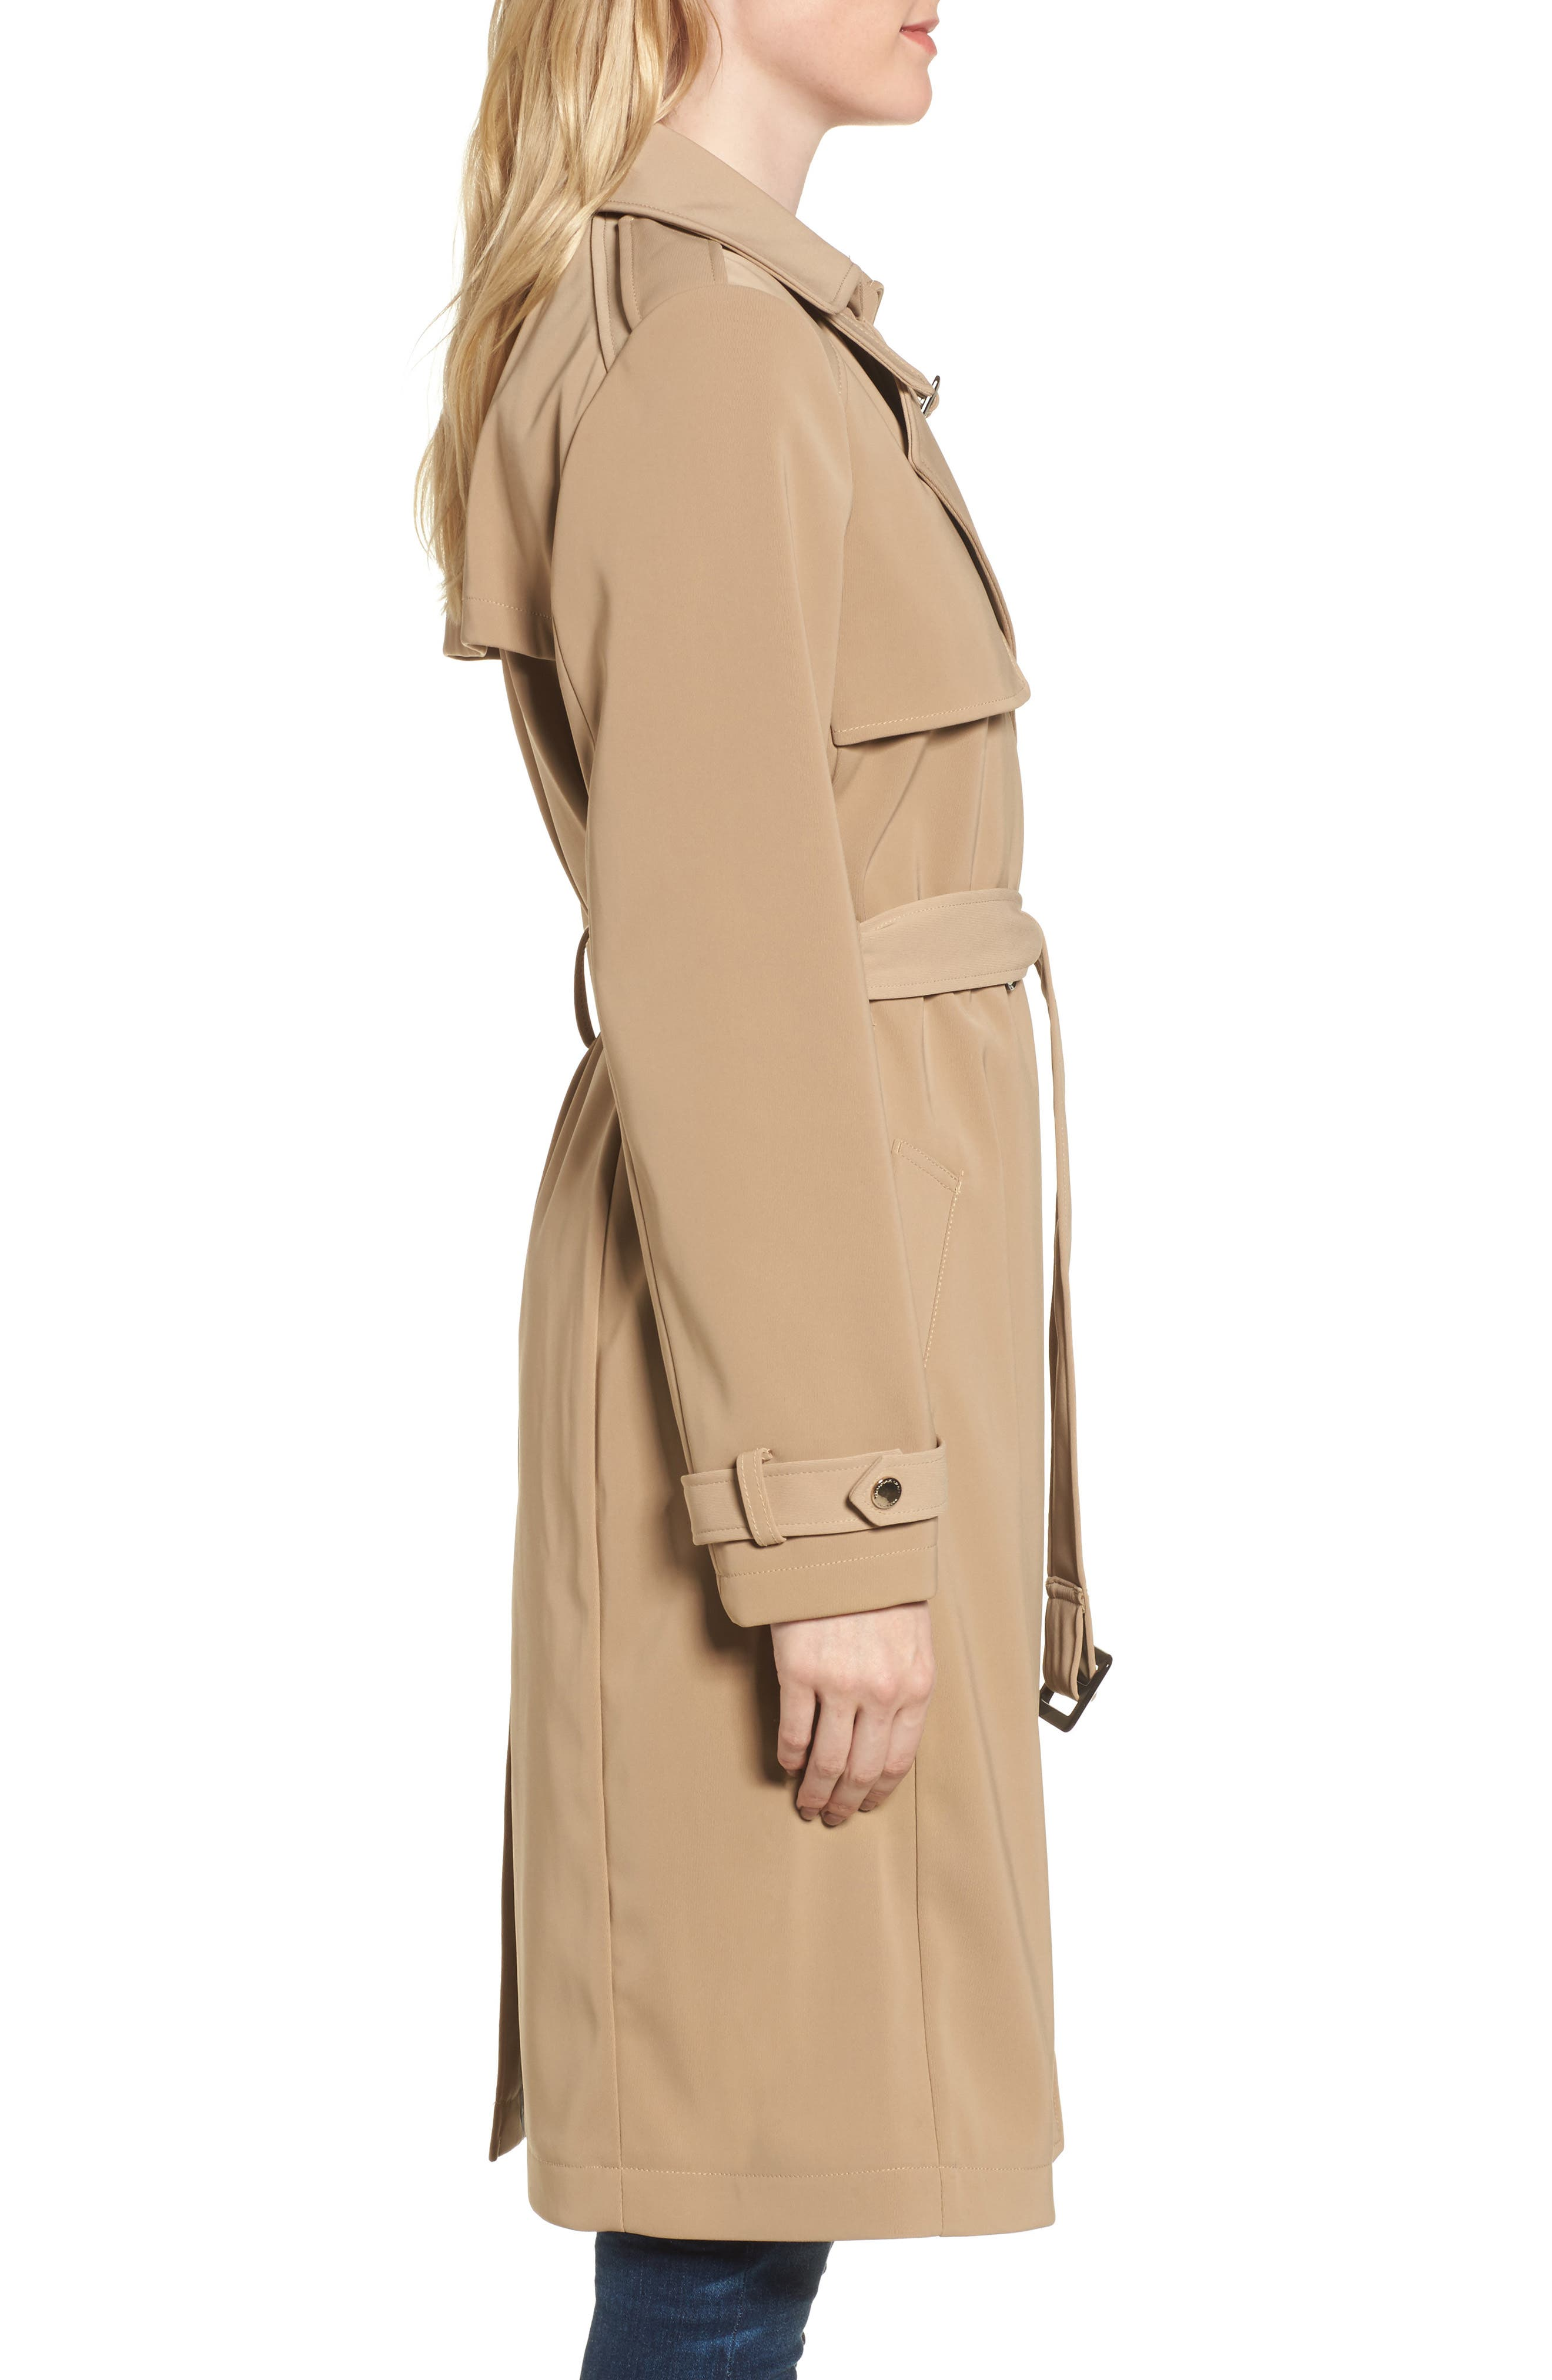 DKNY French Twill Water Resistant Trench Coat,                             Alternate thumbnail 3, color,                             Khaki